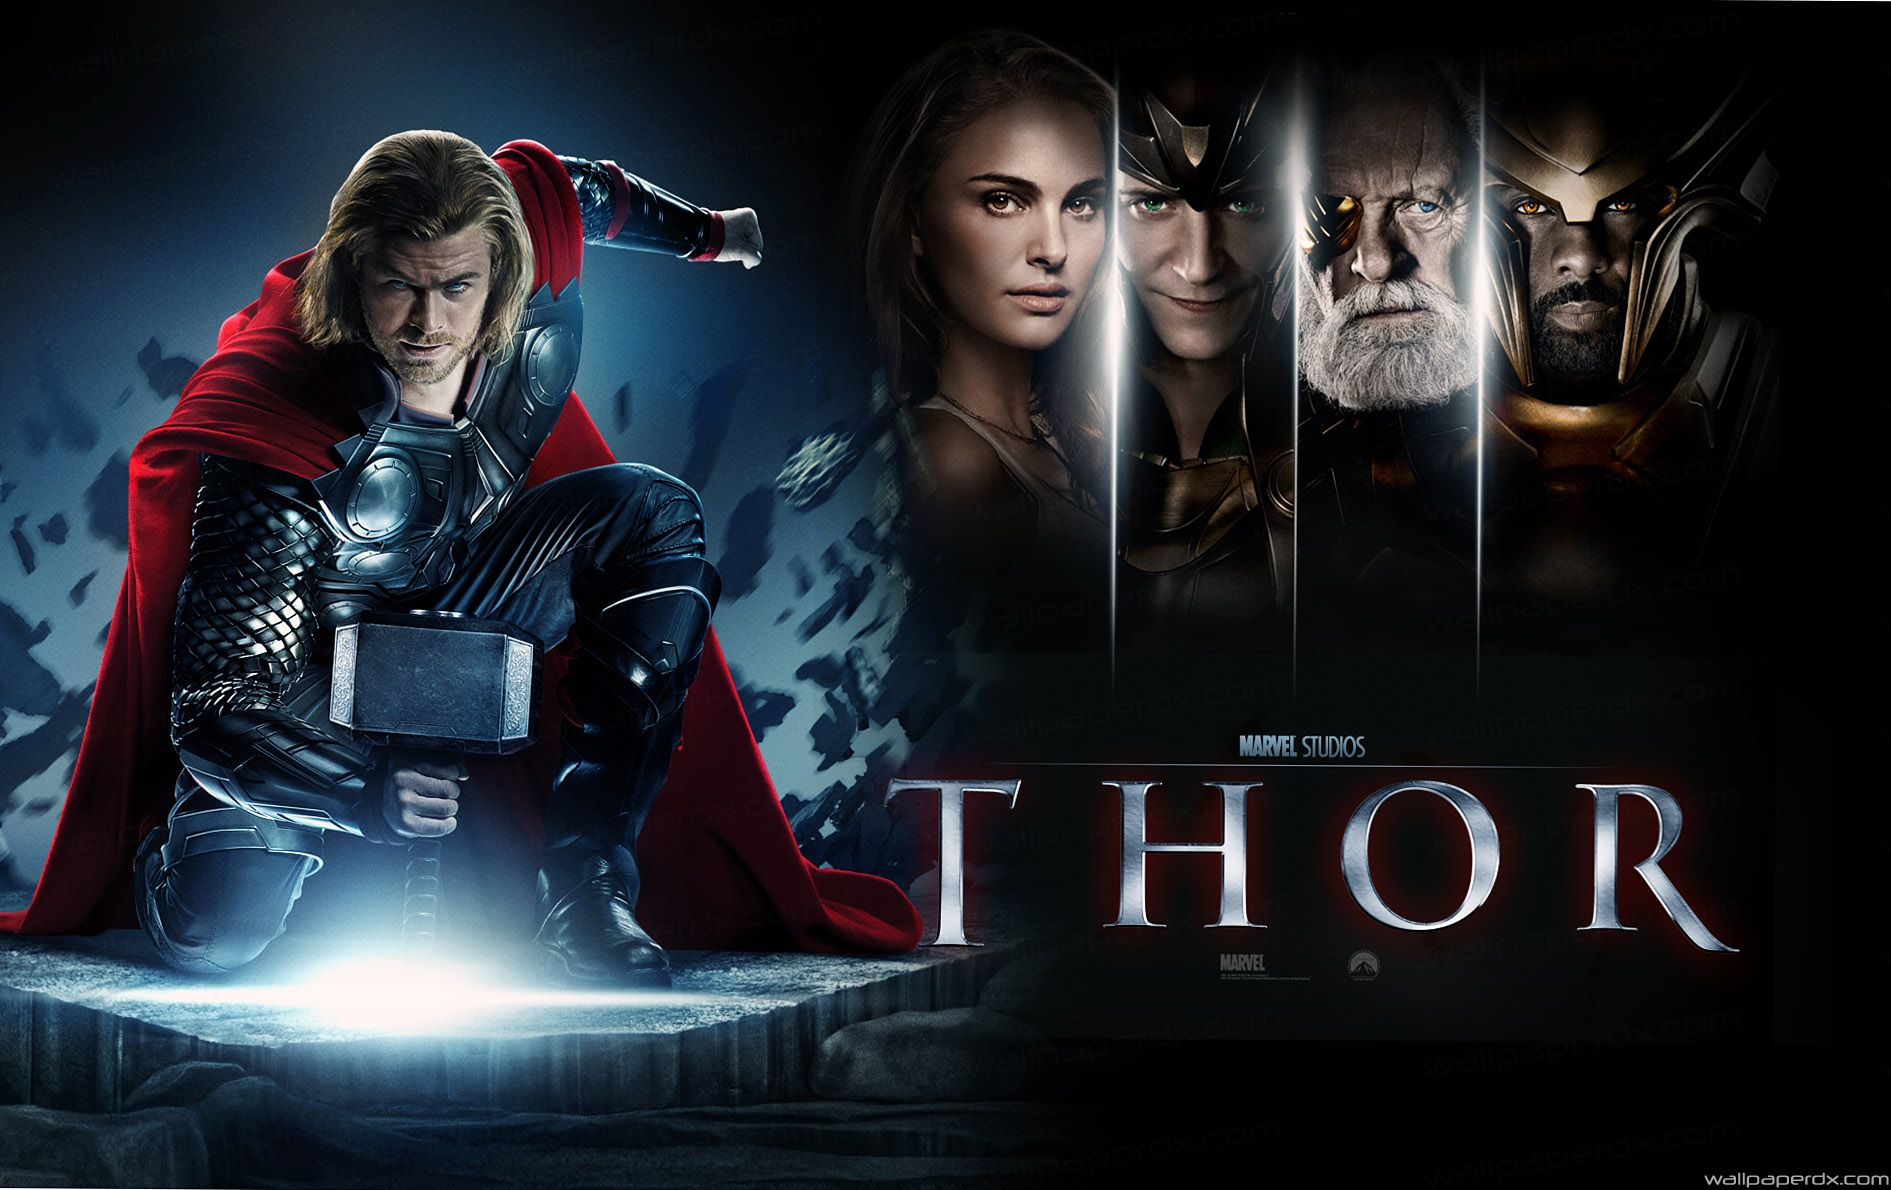 Thor Movie Poster Wallpapers - Top Free Thor Movie Poster ...